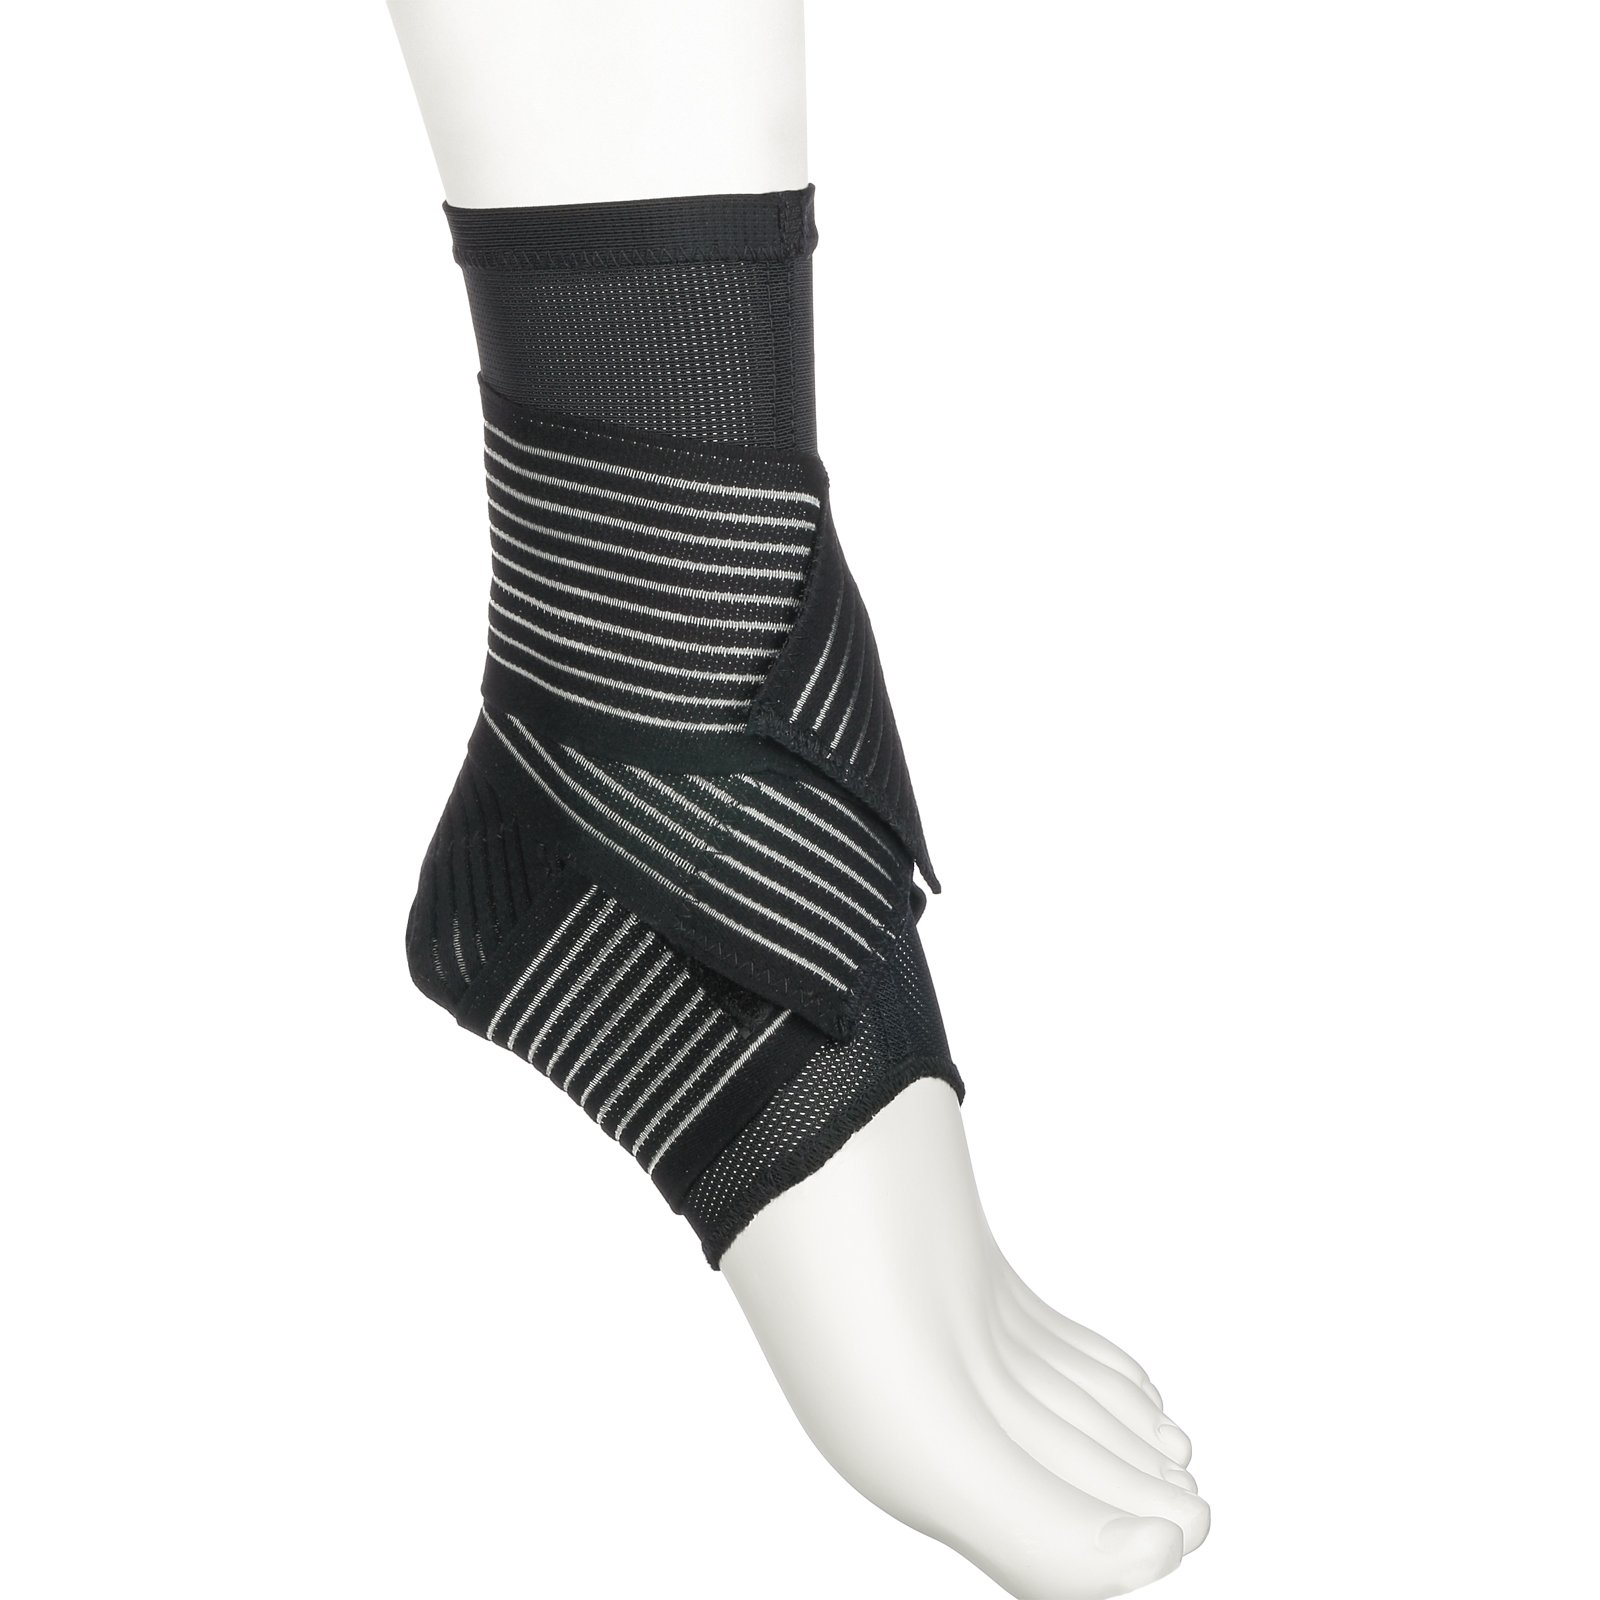 Active Ankle 329 Ankle Brace, Ankle Stabilizer Compression Sleeve with Straps, Braces for Volleyball, Football, Basketball, Rugby, Compression Sock for Protection & Sprain Support, Black, Medium